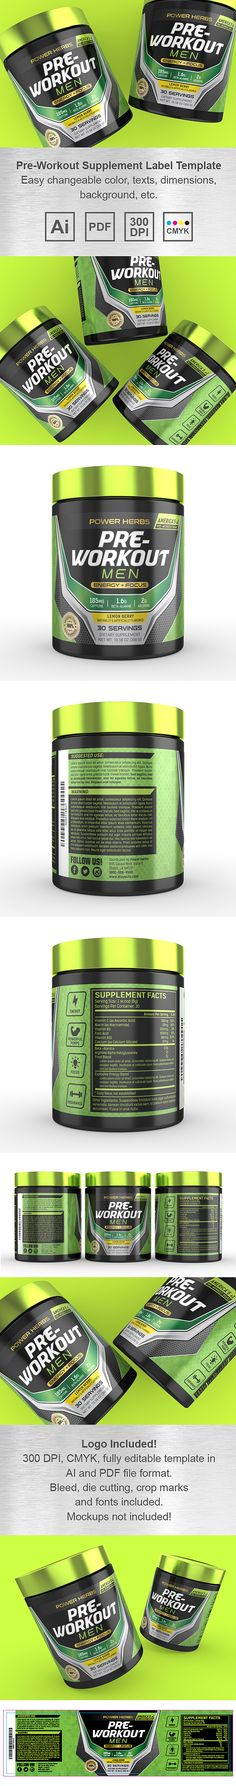 Pre Workout for Men Supplement Label Template http://www.dlayouts.com/template/1106/pre-workout-for-men-supplement-label-template